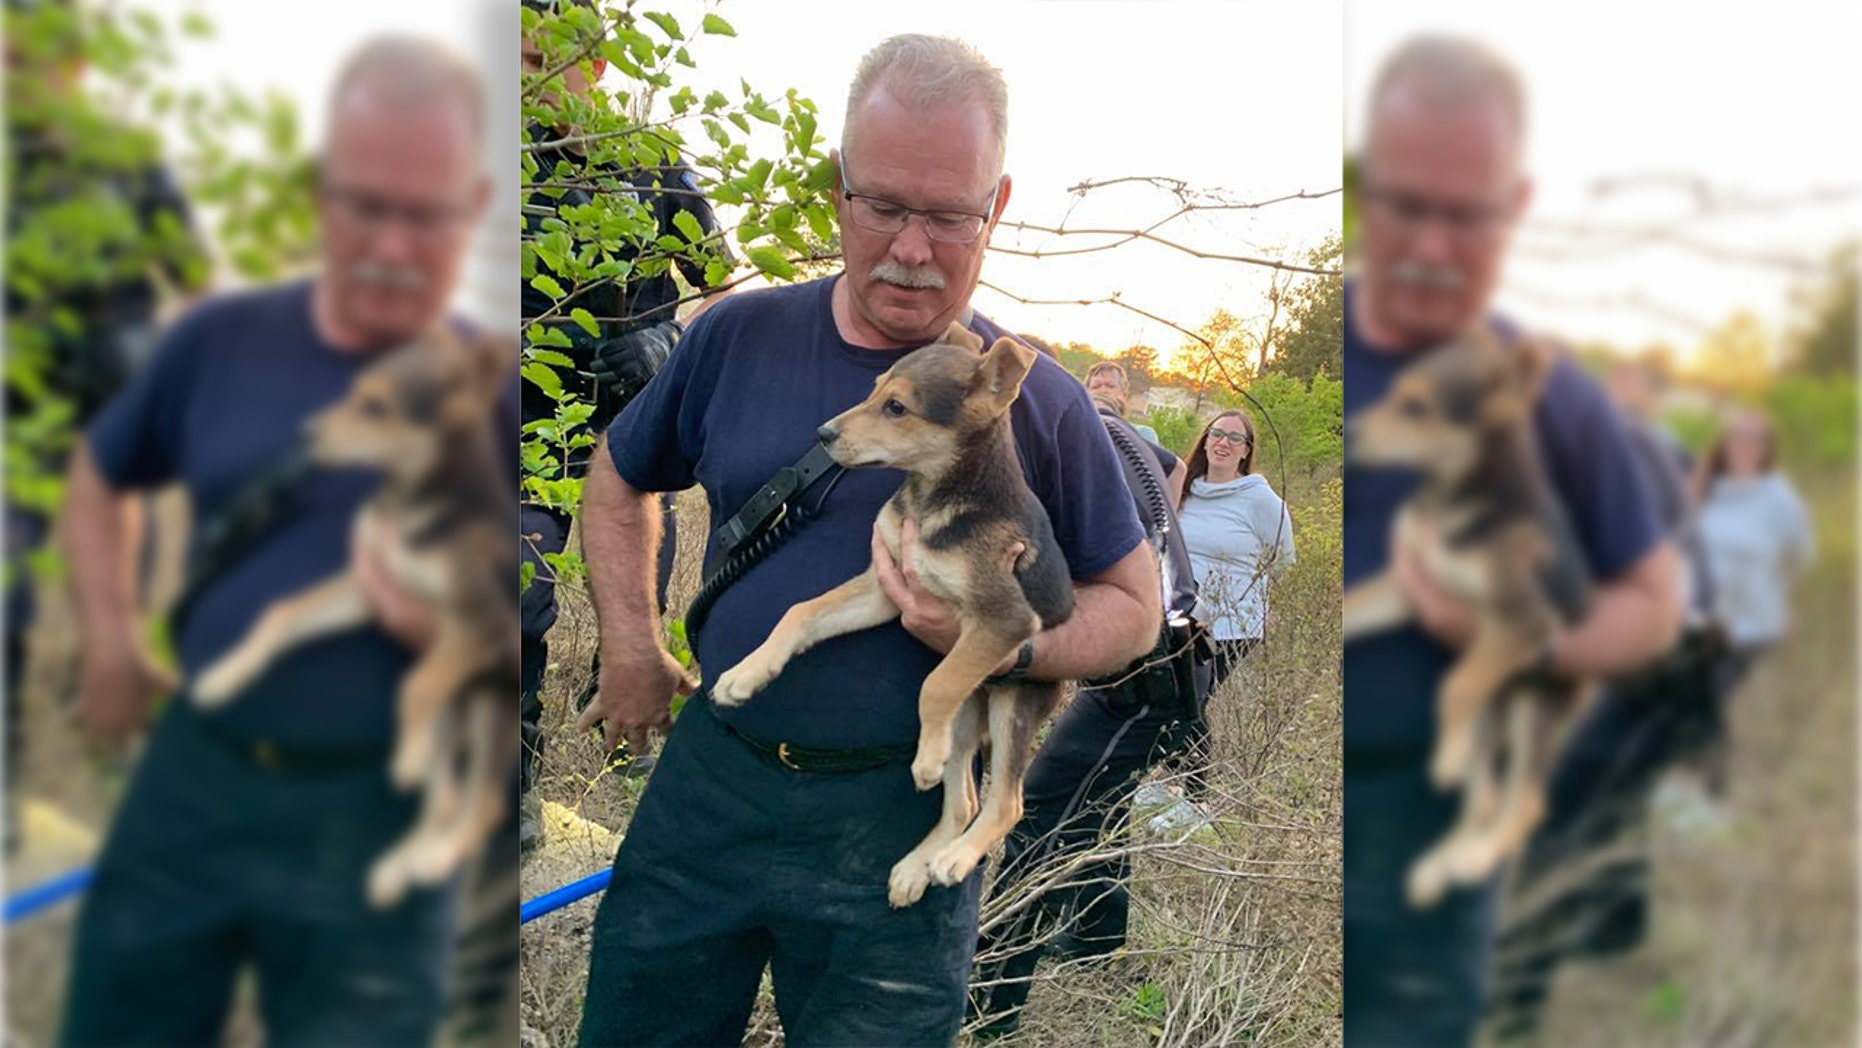 Capt. Paul Bryant adopted the puppy he'd rescued the week before.